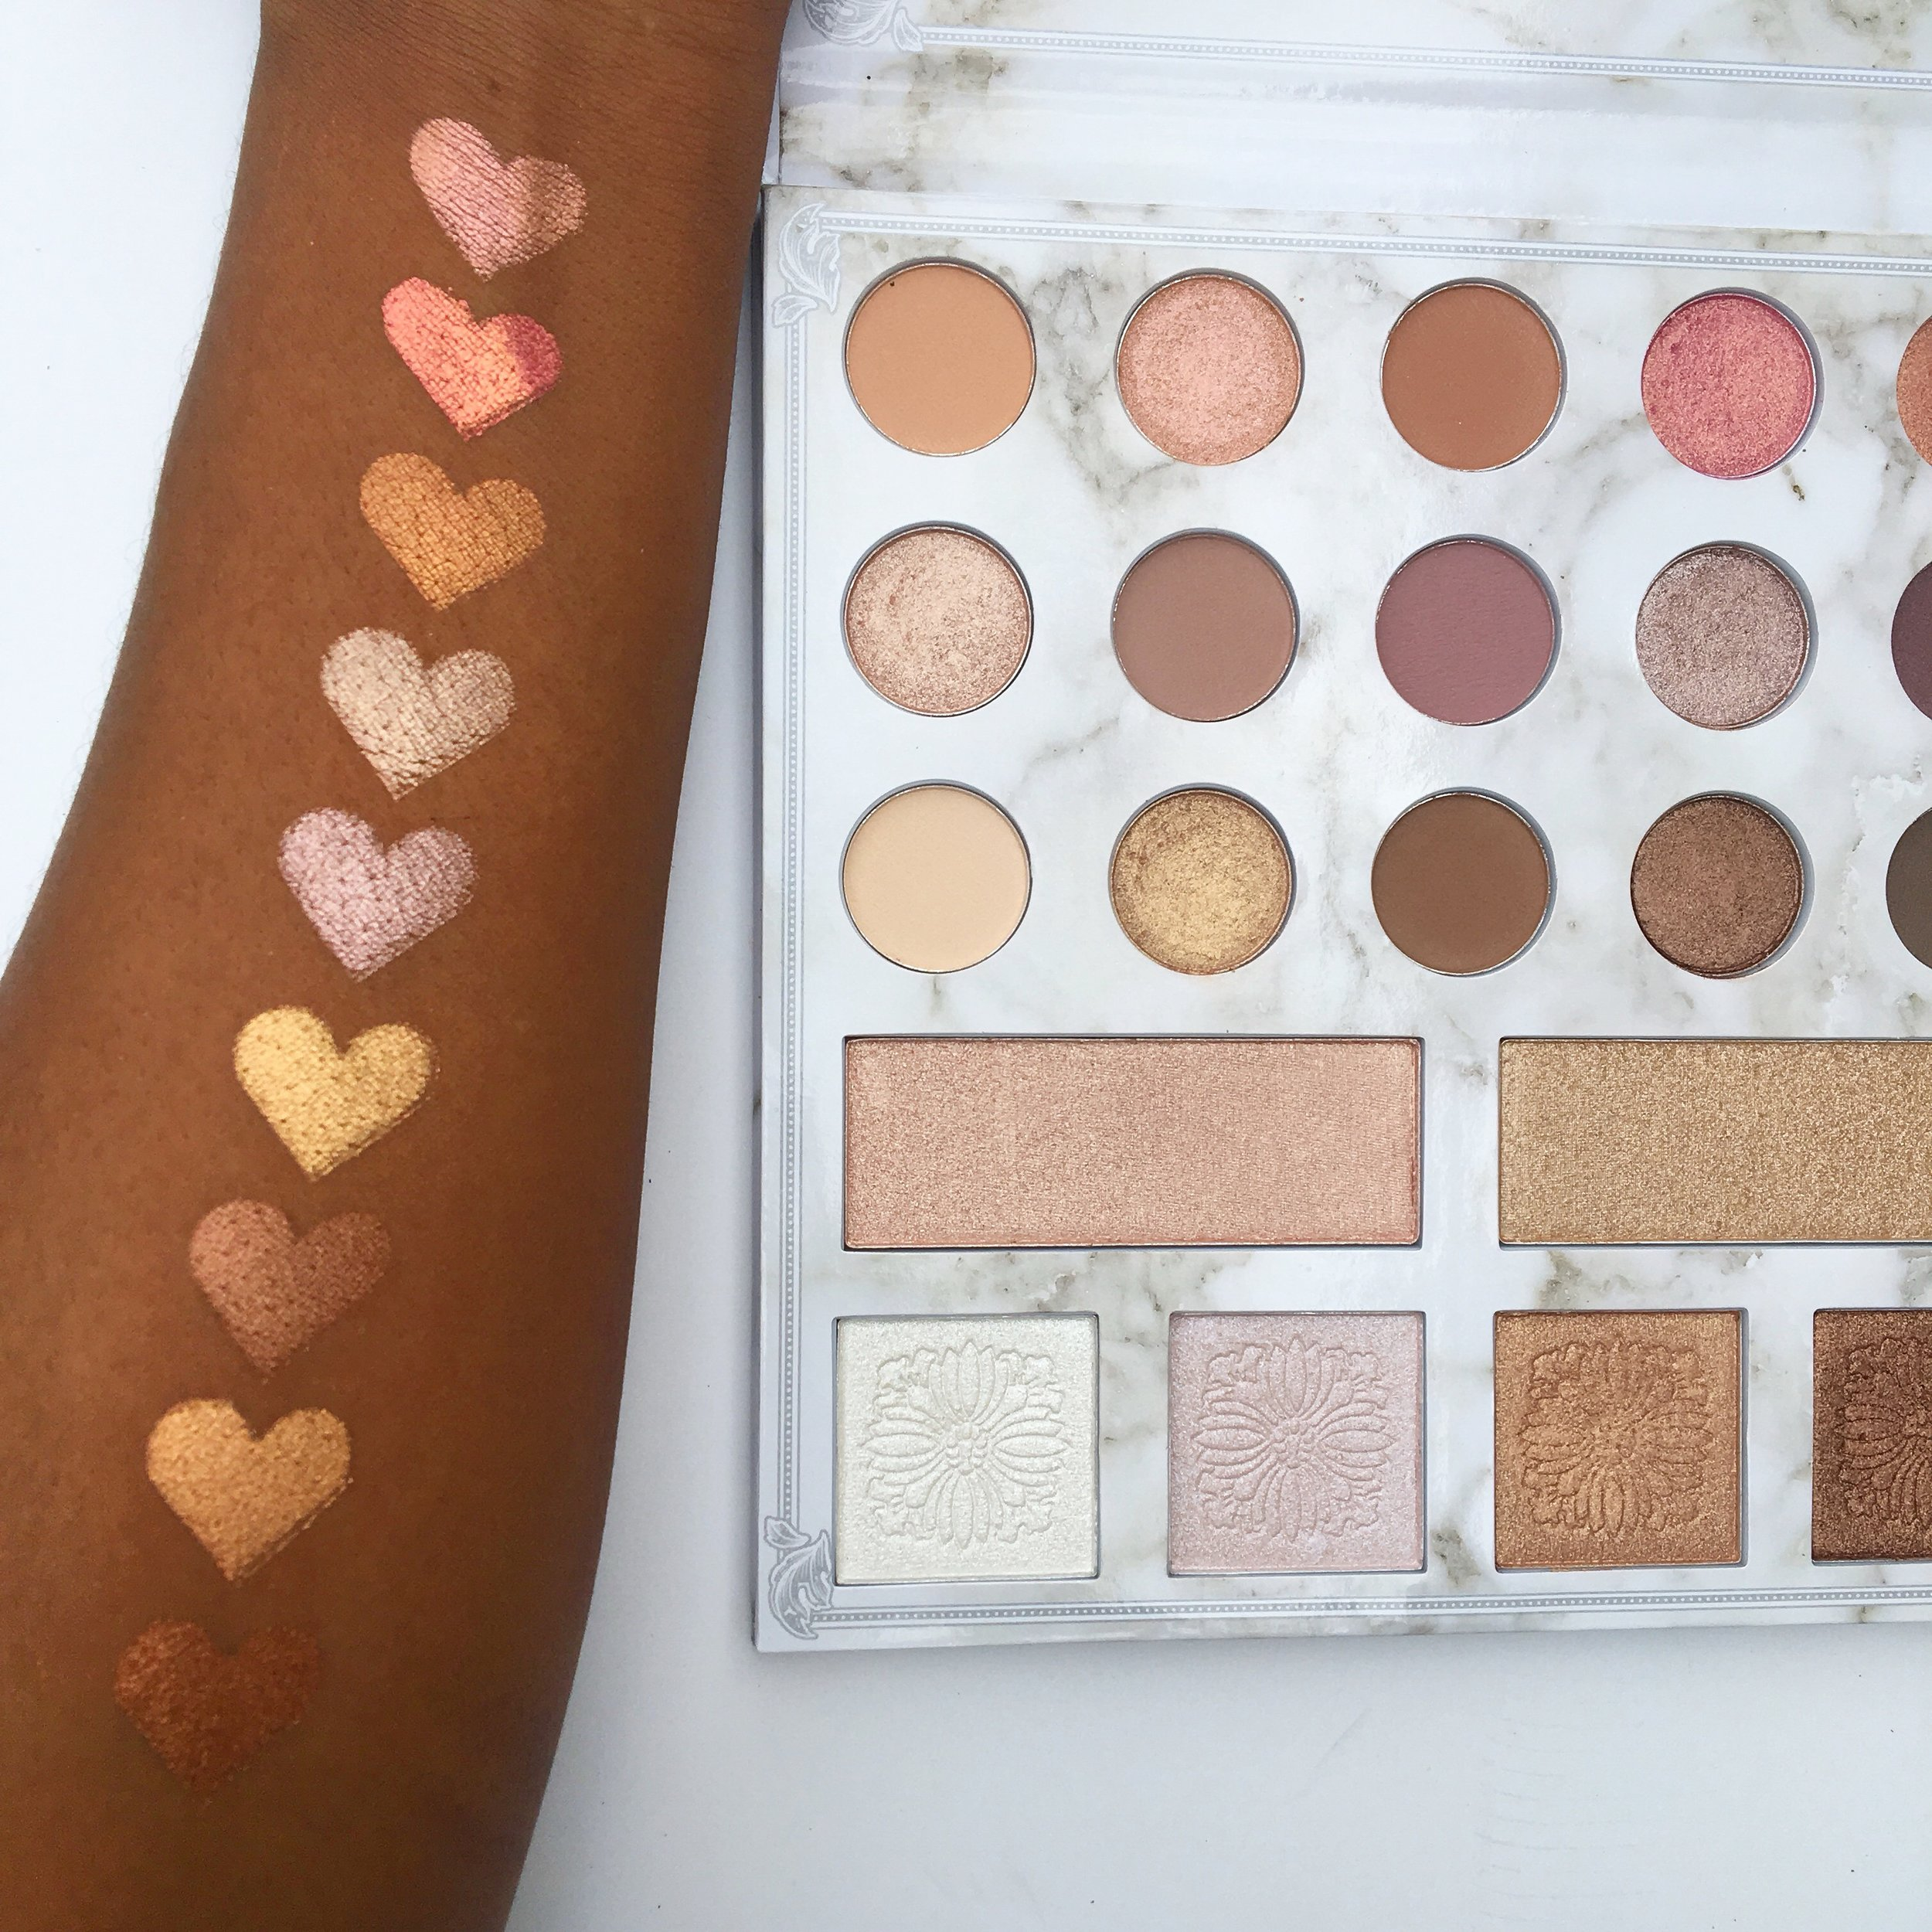 Swatches of the Shimmers